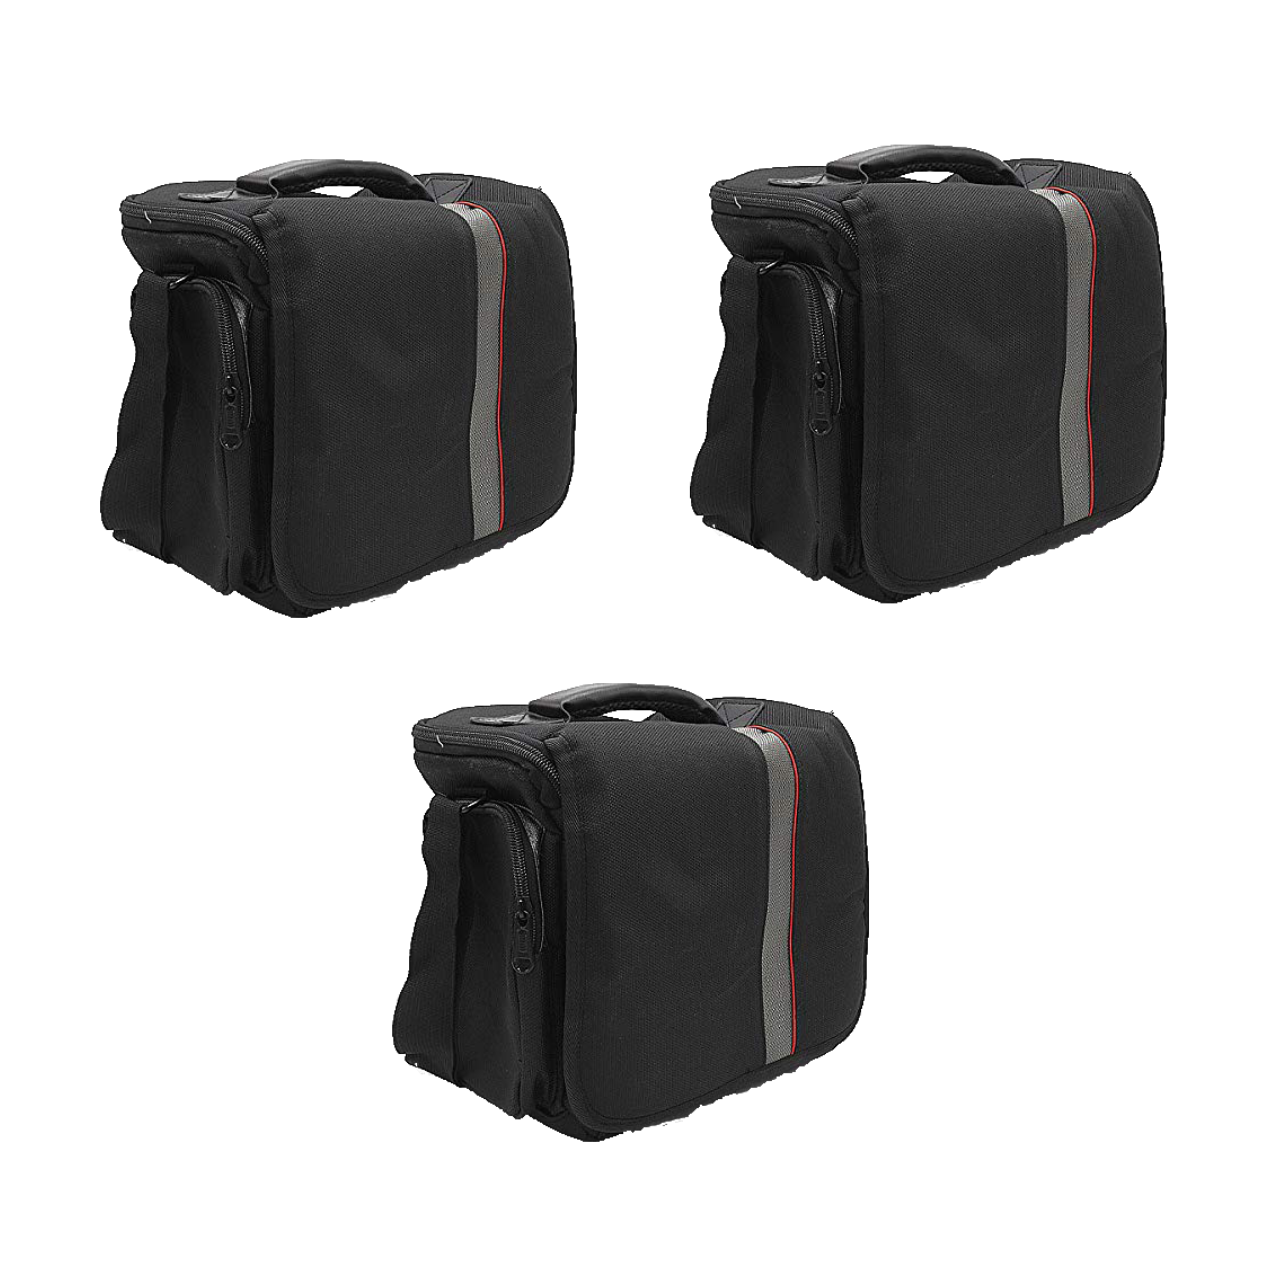 Waterproof Anti-Shock Dslr Camera Bag For Canon, Nikon, Samsung, And Sony Camera Bag -9003 Pack Of 3Pcs Camera Bags Camera Bags